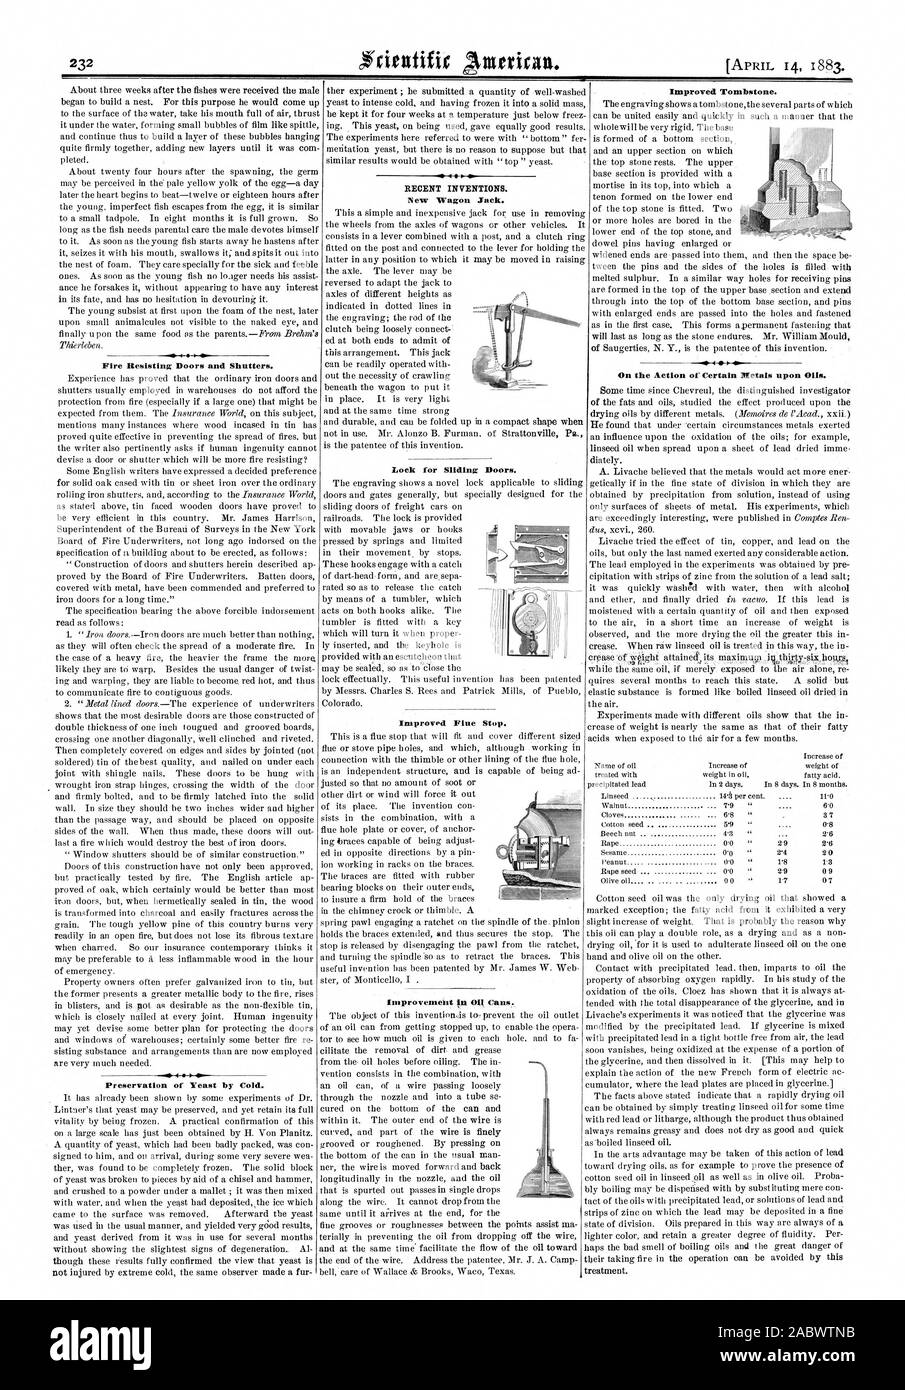 Lock for Sliding Doors. Improved Flue Stop. RECENT INVENTIONS. New Wagon Jack. Improvement in Oli Cans. Fire Resisting Doors and Shutters. Preservation of Yeast by Cold. Improved Tombstone. On the Action of Certain Metals upon Oils., scientific american, 1883-04-14 Stock Photo